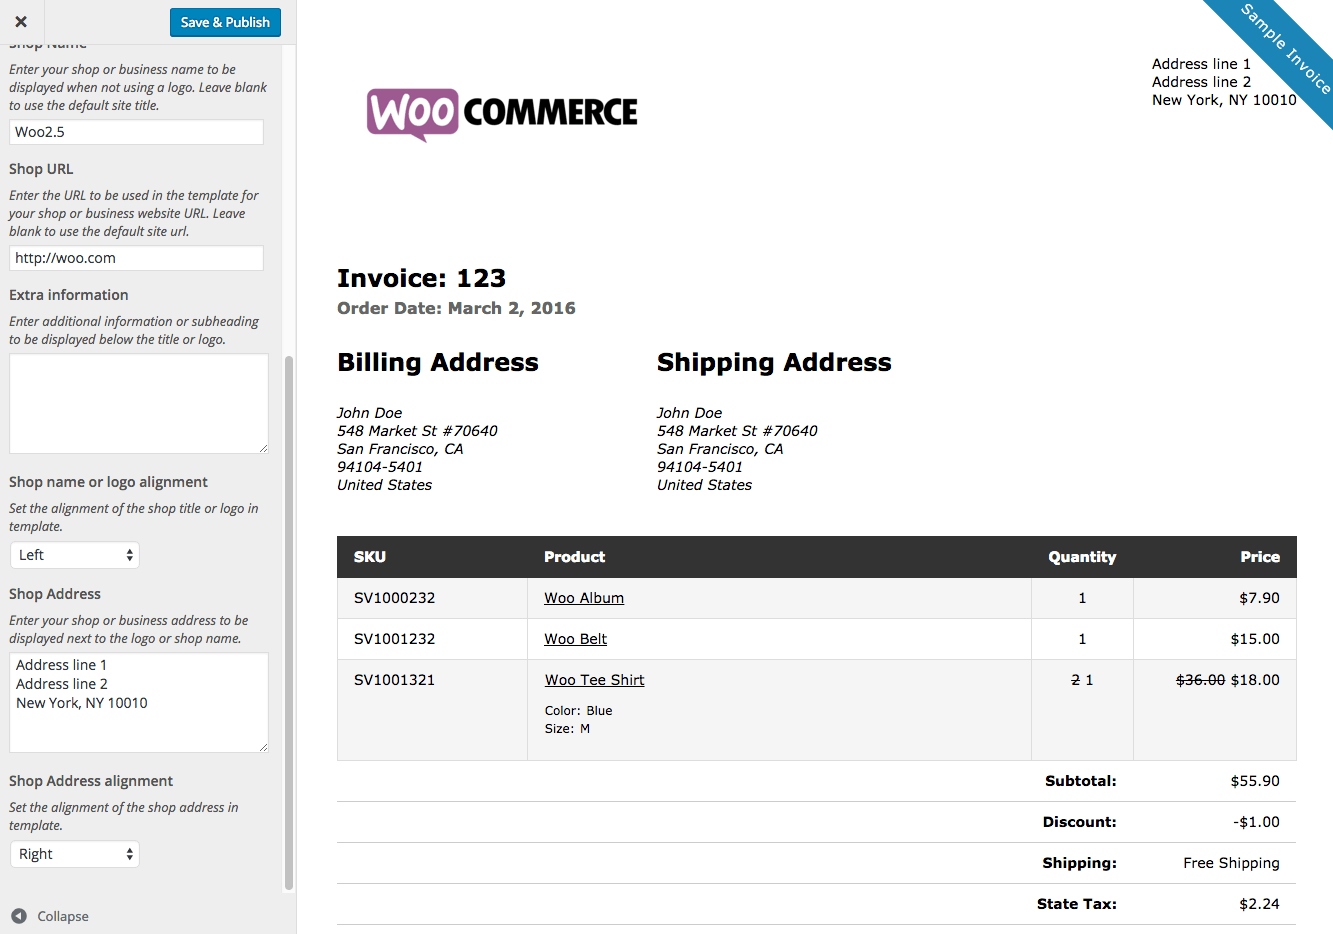 Darkfaderus  Pleasing Woocommerce Print Invoices Amp Packing Lists  Woocommerce Docs With Remarkable Woocommerce Print Invoices  Packing Lists Customizer With Comely Invoice Search Also Crm And Invoicing In Addition Hsbc Invoice Finance Log On And How Do I Pay An Invoice As Well As Myob Invoice Templates Additionally Invoice Terms Net From Docswoocommercecom With Darkfaderus  Remarkable Woocommerce Print Invoices Amp Packing Lists  Woocommerce Docs With Comely Woocommerce Print Invoices  Packing Lists Customizer And Pleasing Invoice Search Also Crm And Invoicing In Addition Hsbc Invoice Finance Log On From Docswoocommercecom